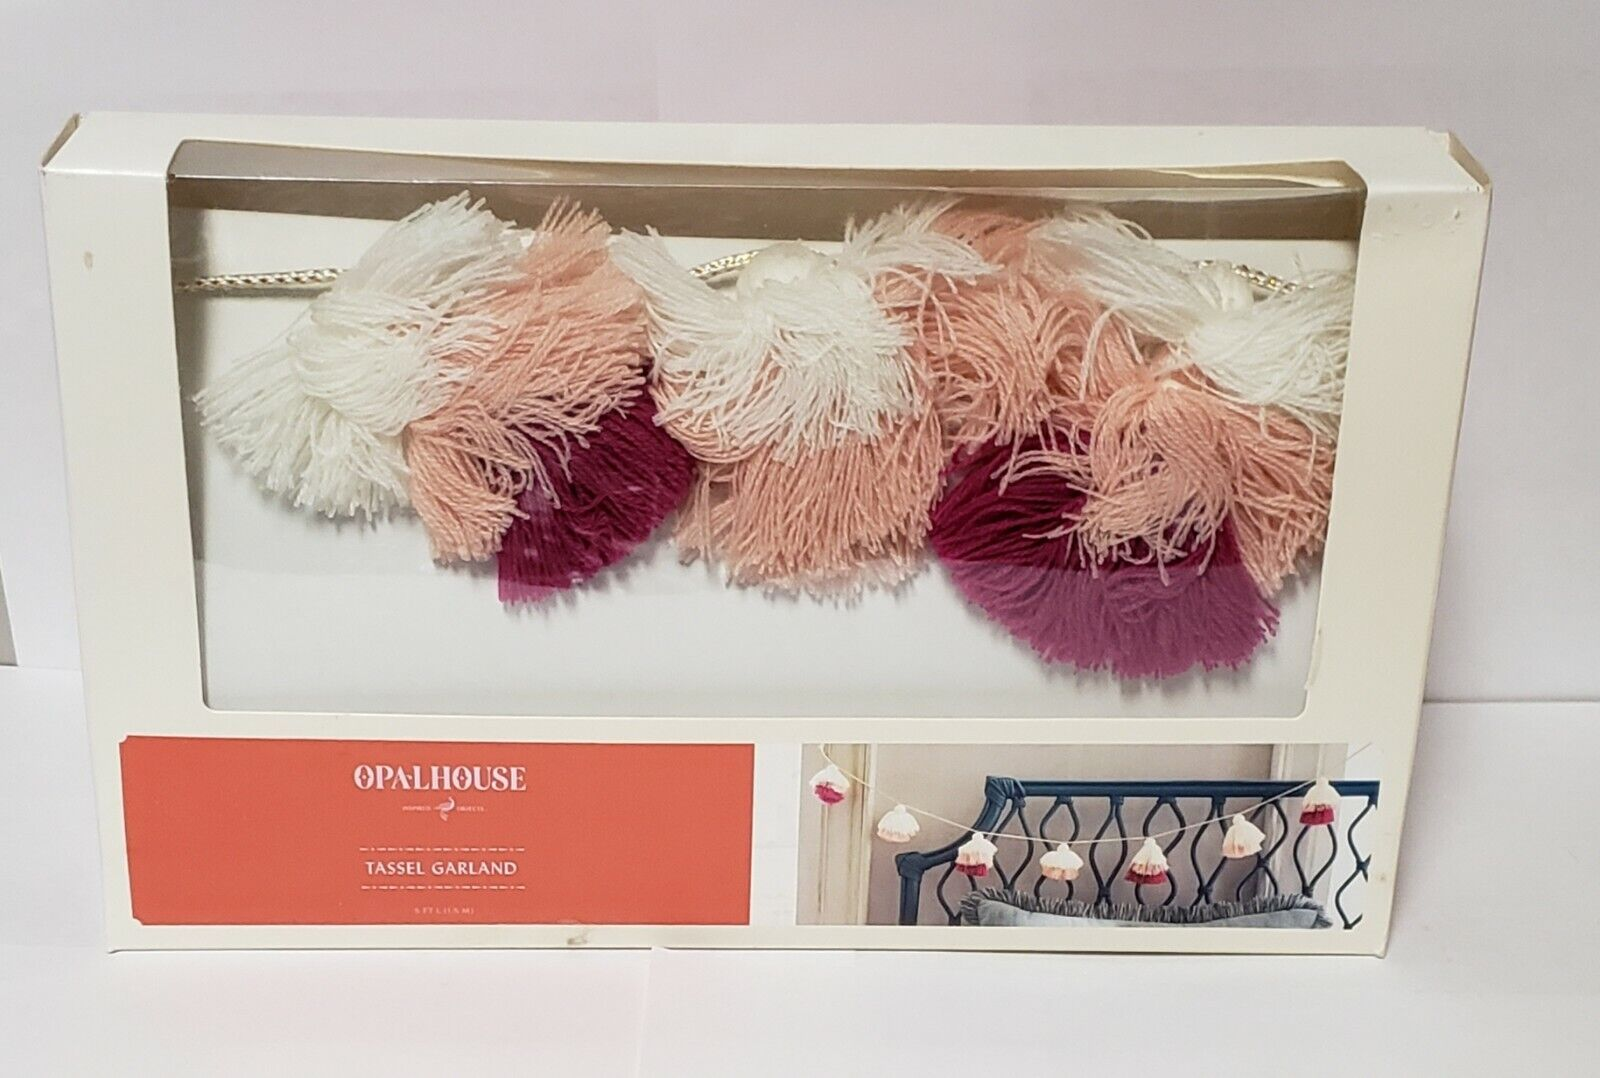 5 Pink Tassel Bunting Garland Decorative Wall Hanging Opalhouse For Sale Online Ebay